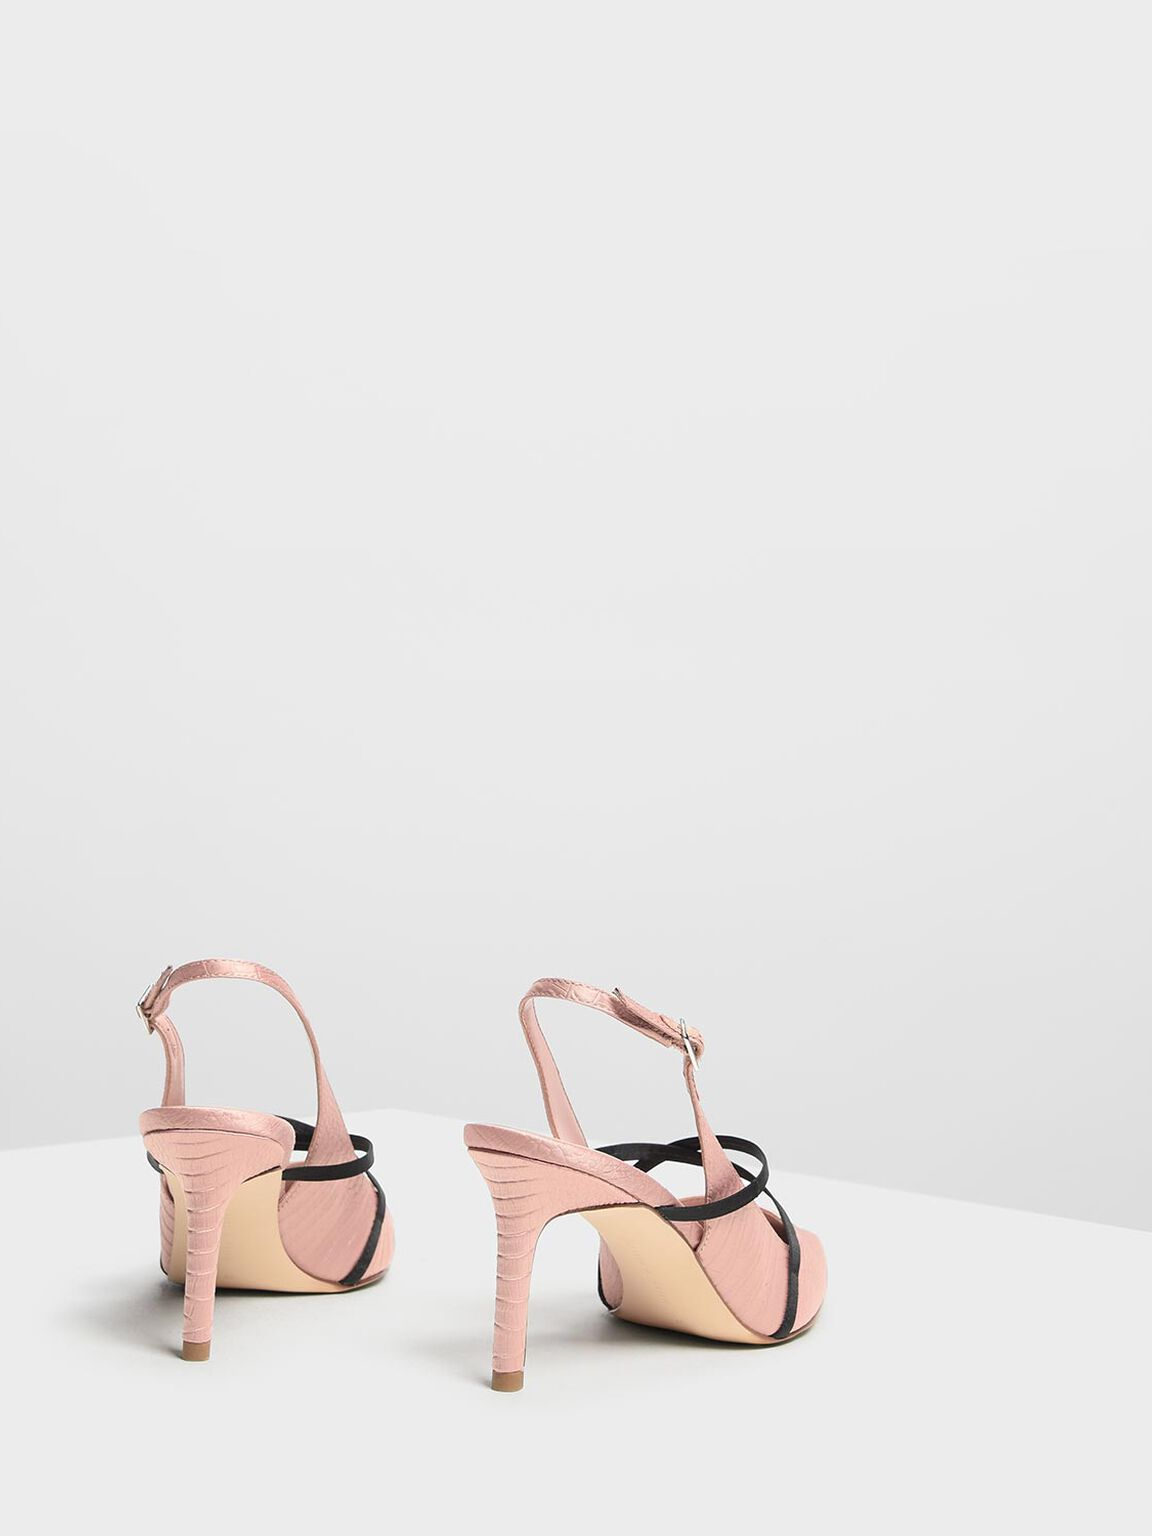 Criss Cross Embossed Slingbacks, Nude, hi-res